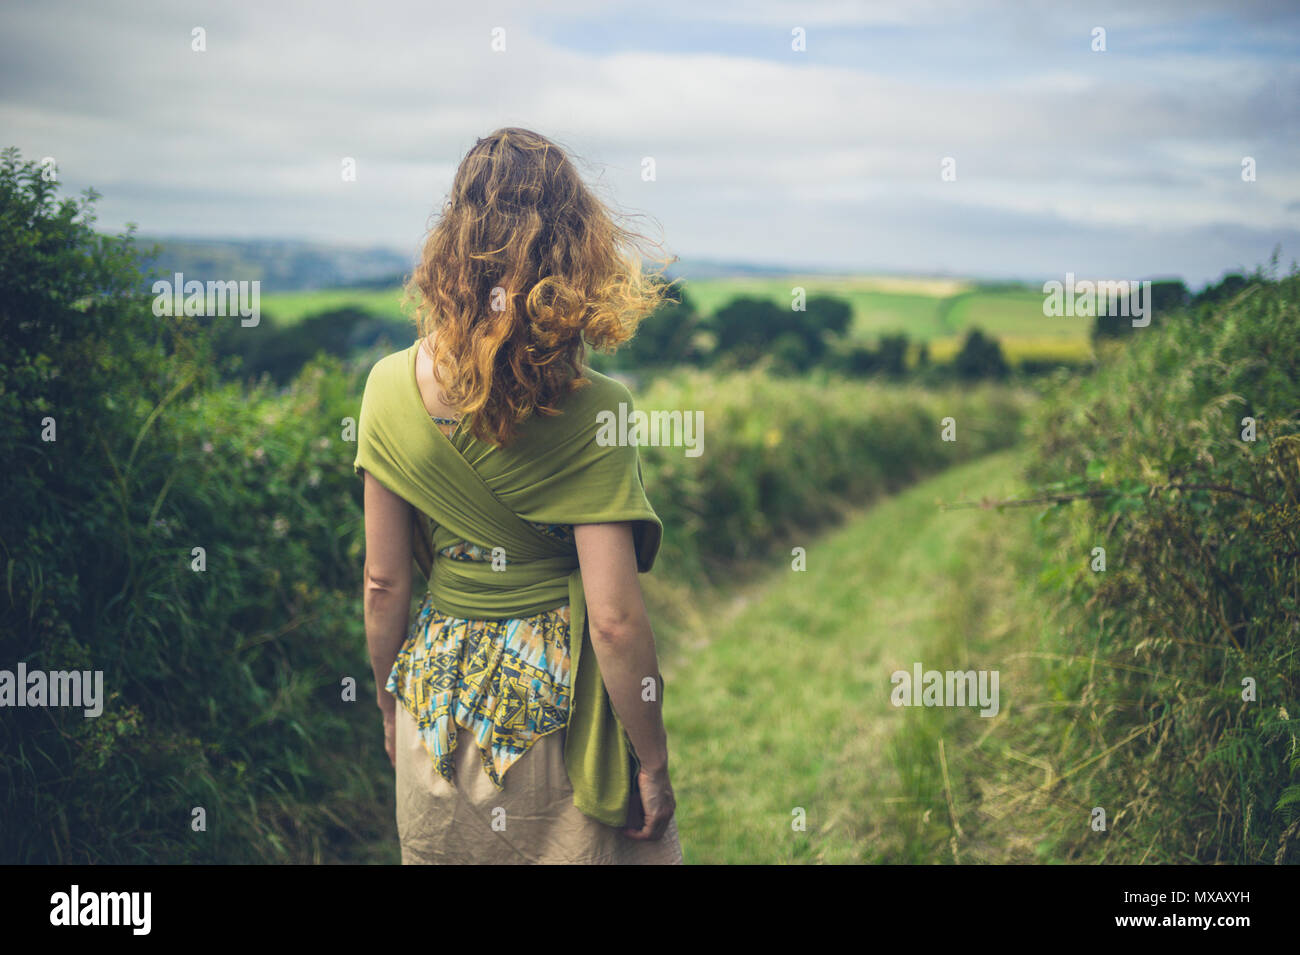 A young woman is walking in the countryside - Stock Image